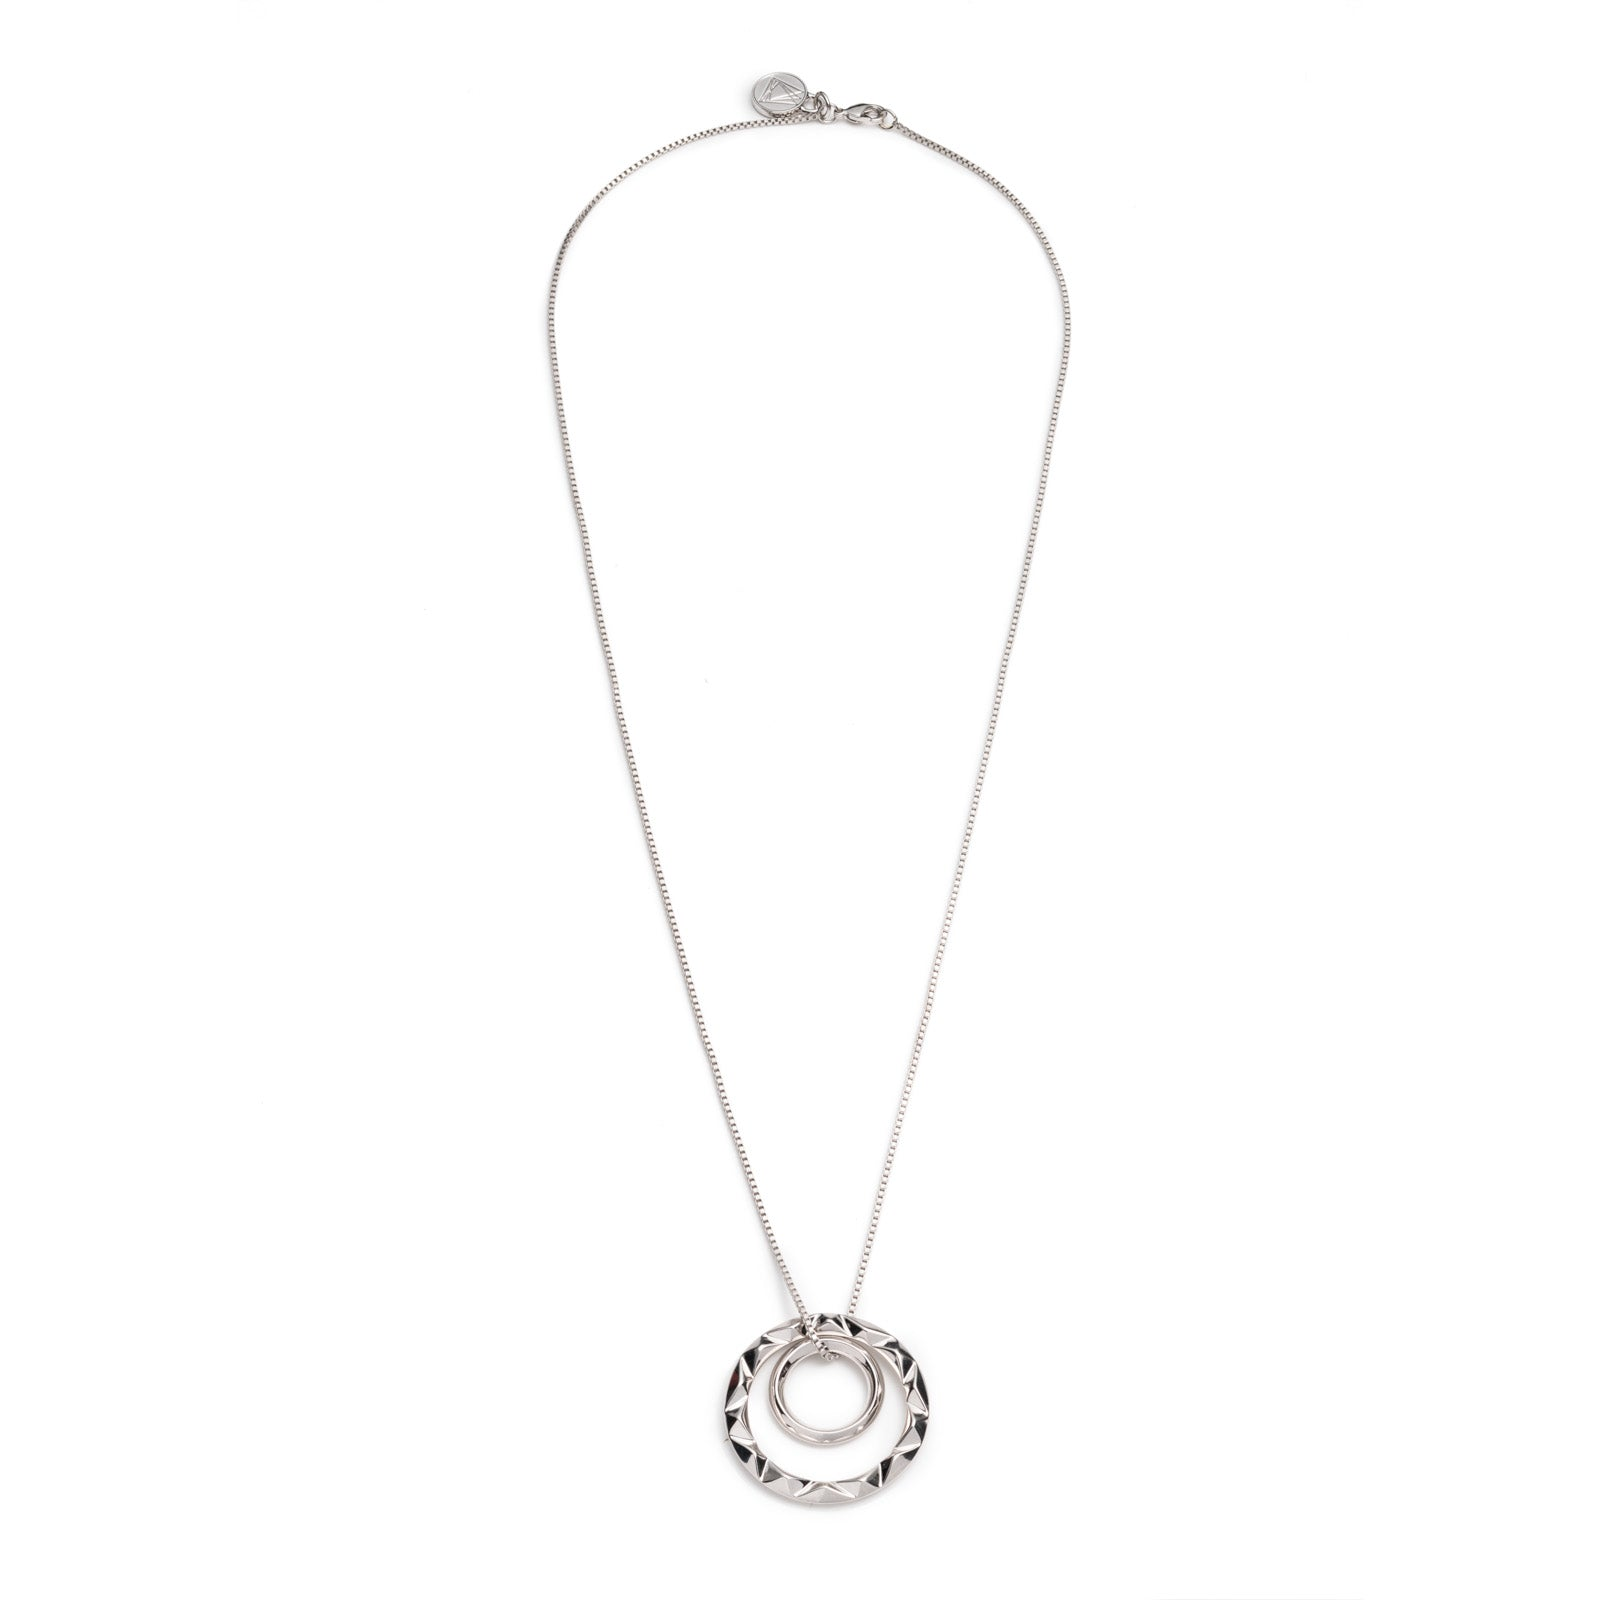 PRIZM DOUBLE PENDANT NECKLACE - Silver Plated Brass